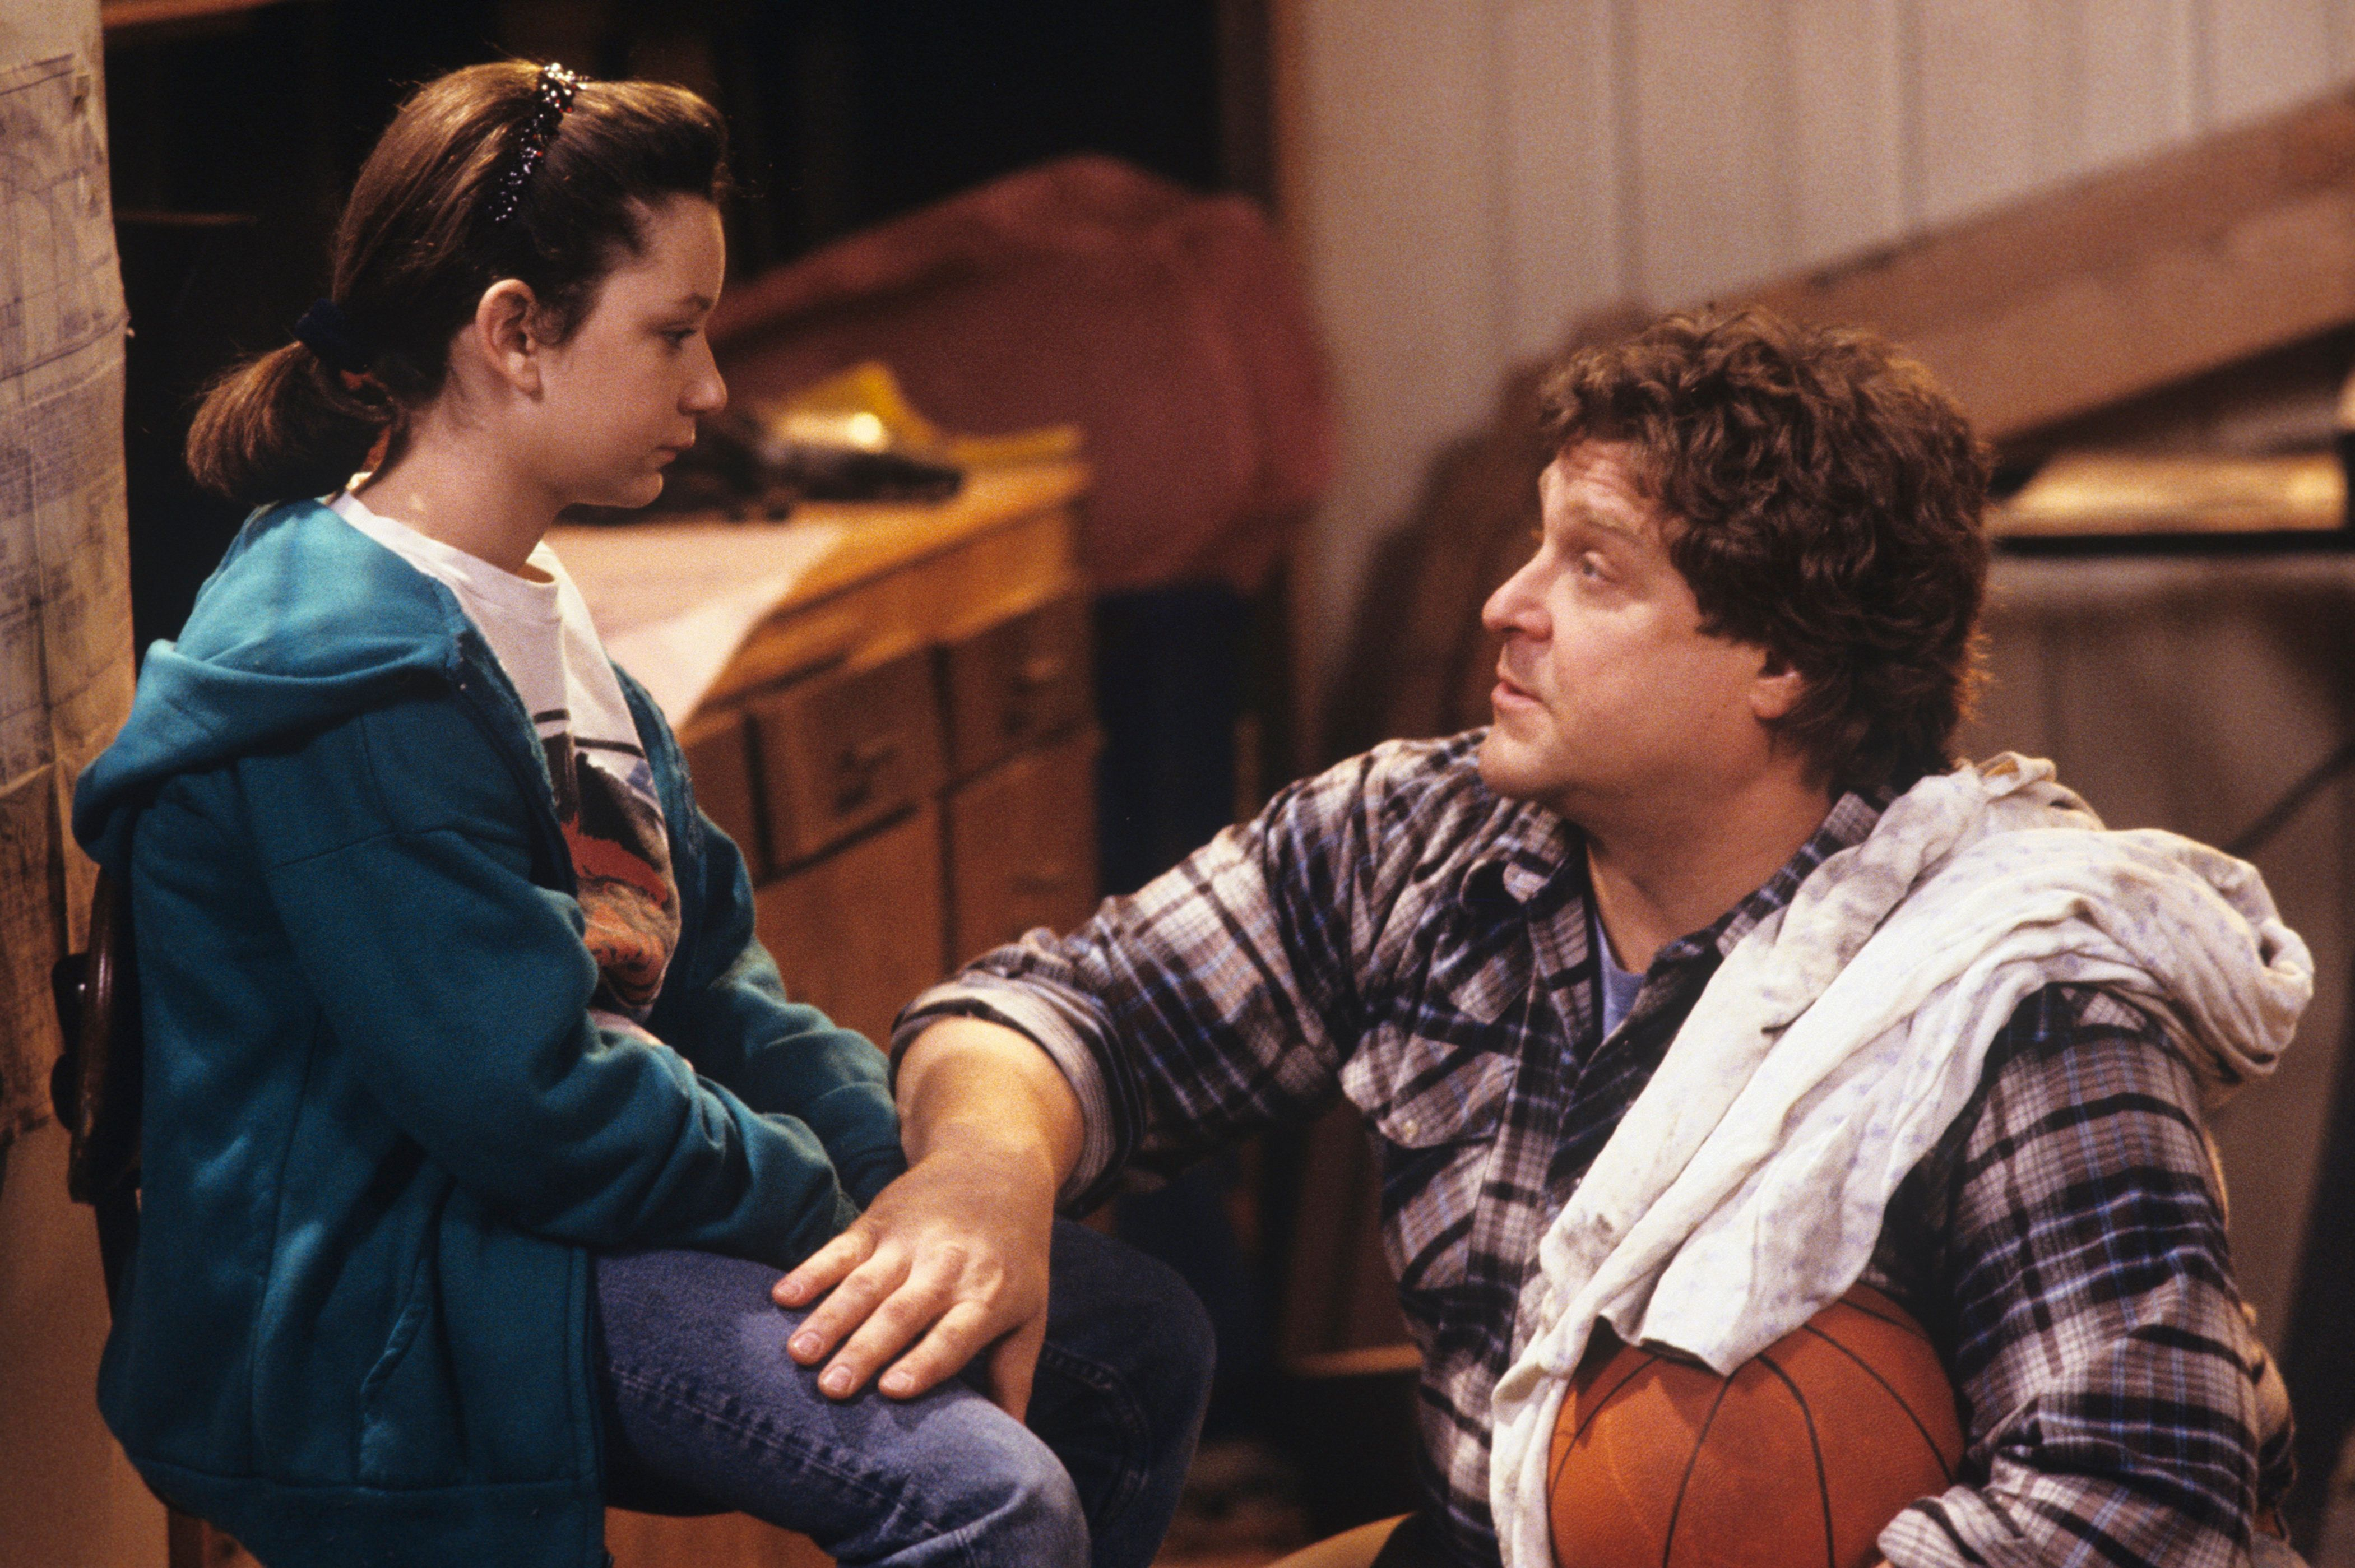 UNITED STATES - JANUARY 23:  ROSEANNE - 'Nightmare on Oak Street' 2/14/89 Sara Gilbert, John Goodman  (Photo by ABC Photo Archives/ABC via Getty Images)